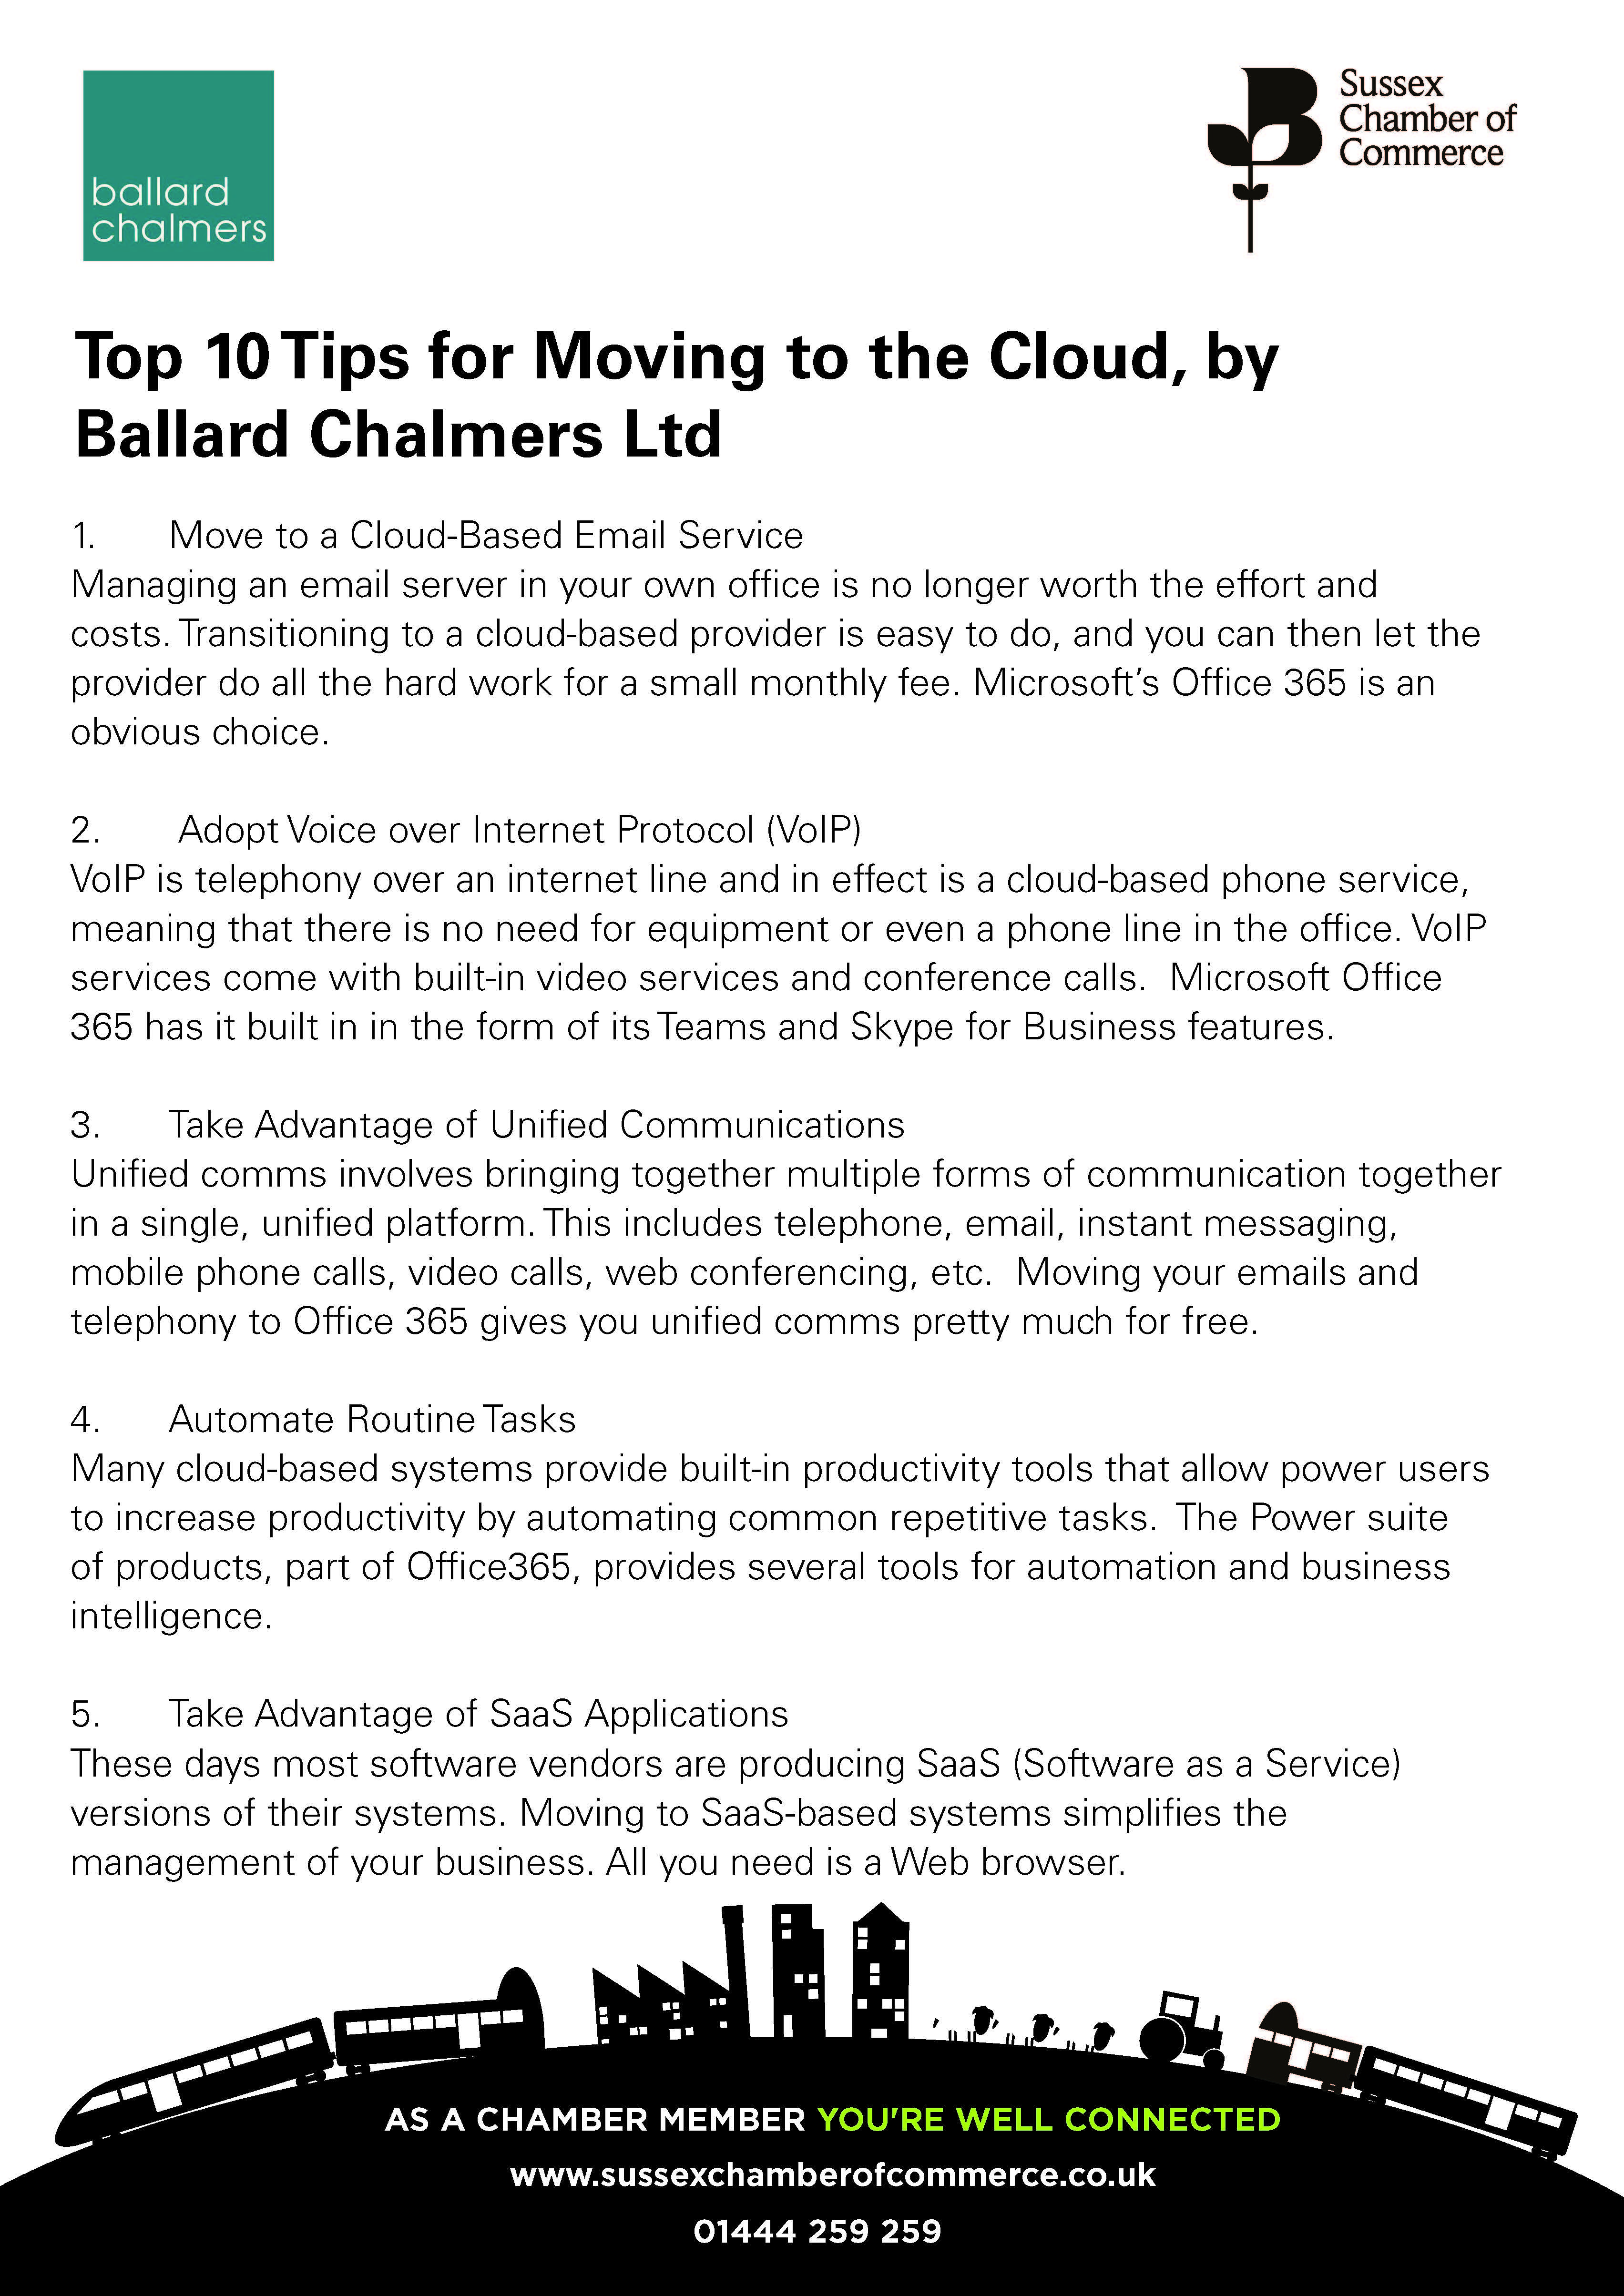 top_10_tips_for_moving_to_the_cloud_by_ballard_chalmers_page_1_4818